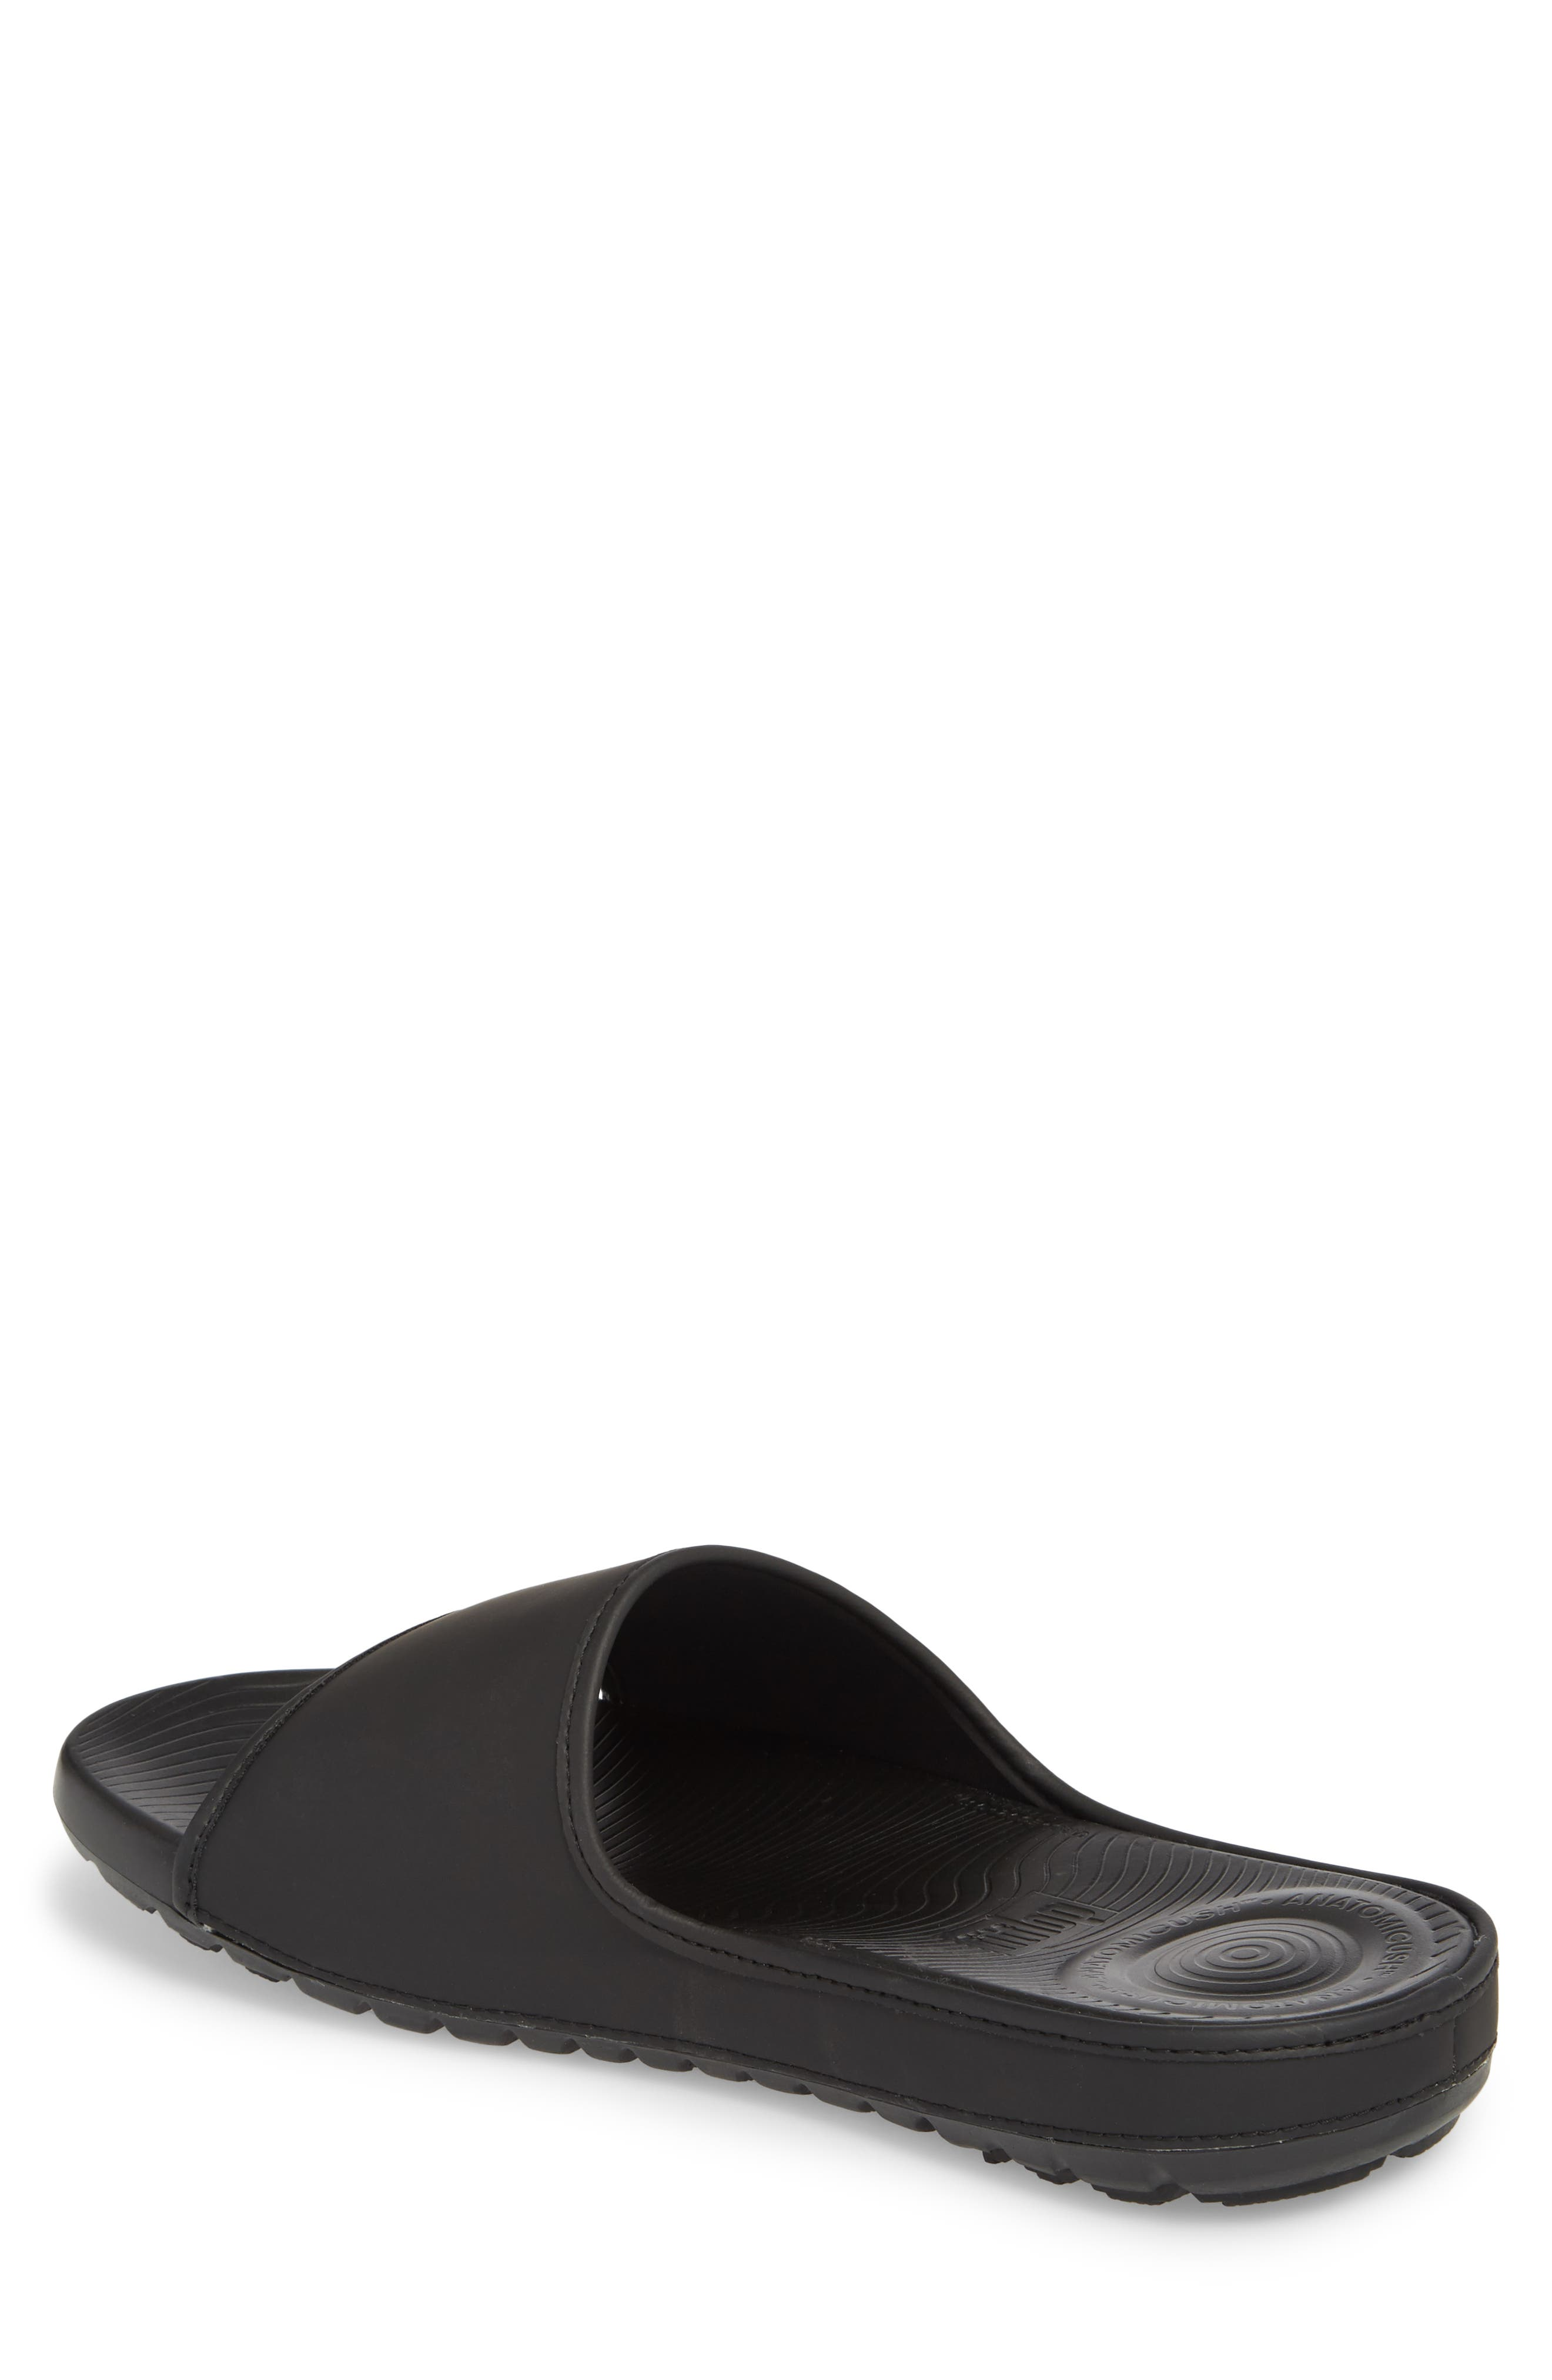 Lido Sport Slide,                             Alternate thumbnail 2, color,                             Black